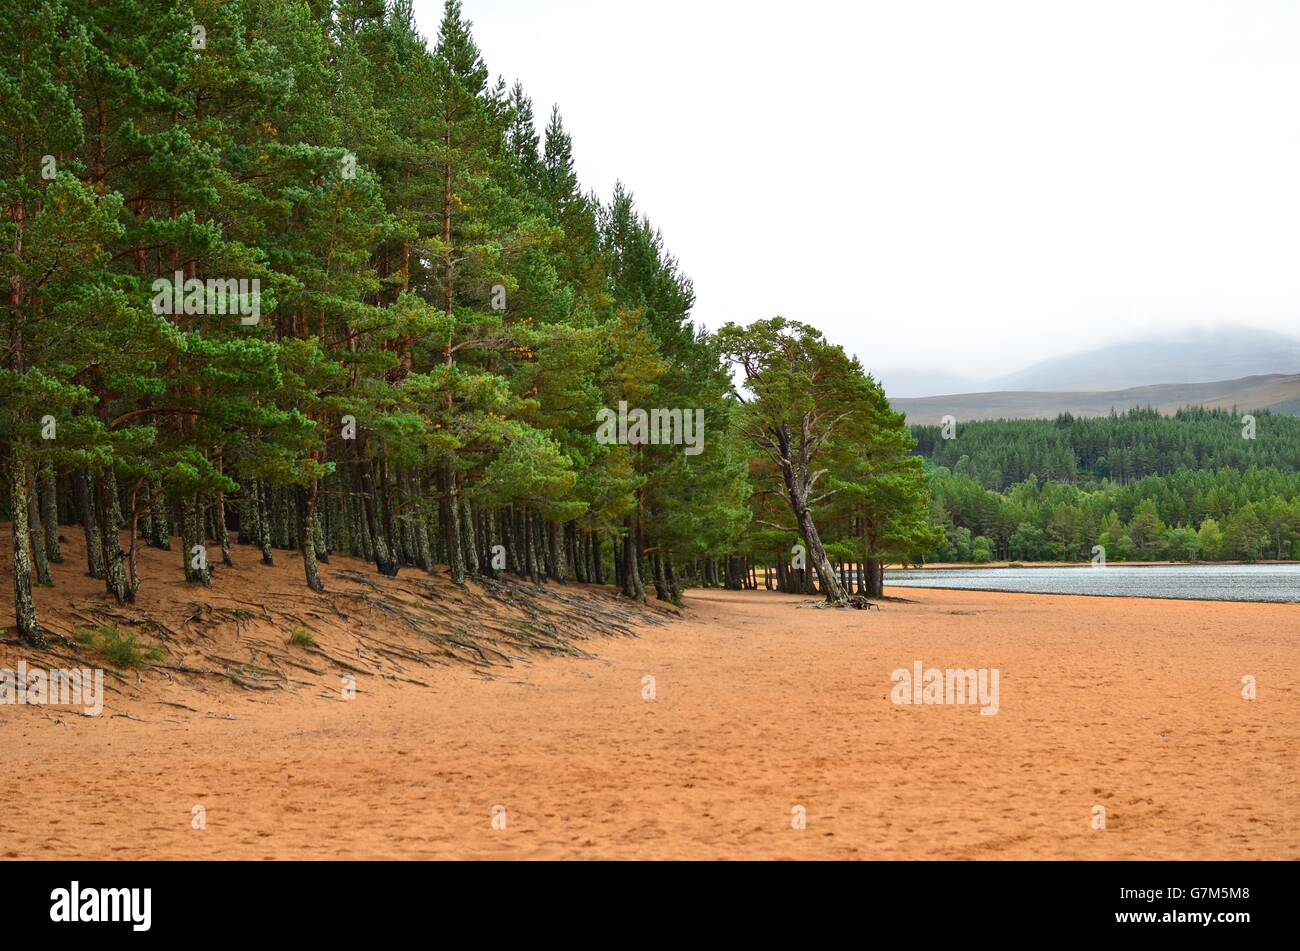 View from the sandy shore on Loch Morlich to Glenmore forest and the Cairngorm plateau, by Aviemore, Scotland UK Stock Photo